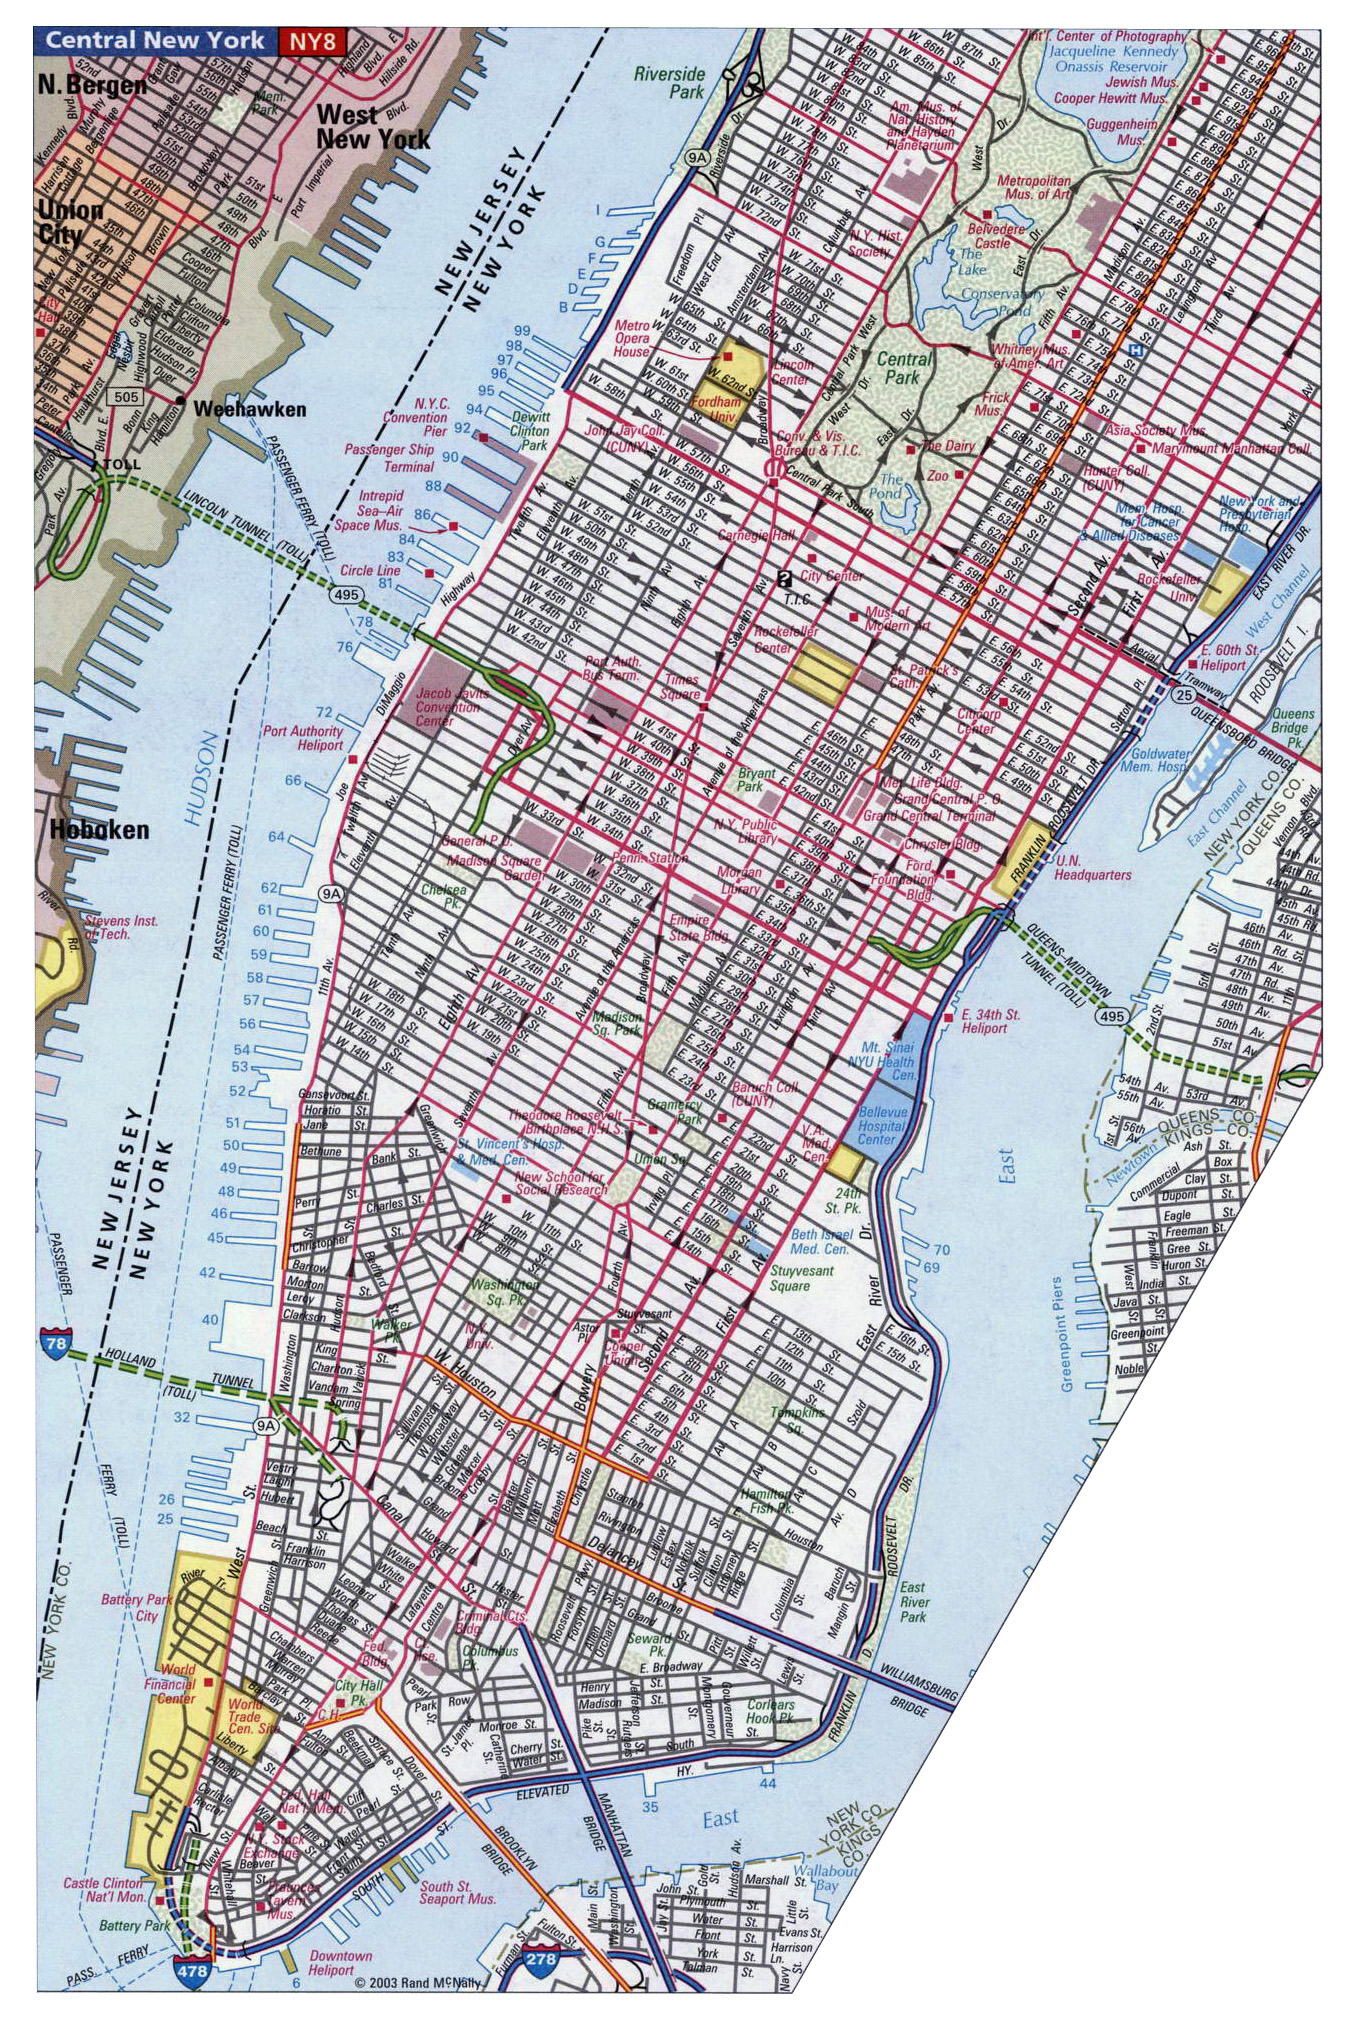 Street Map Of Manhattan Nyc.Detailed Street Map Of Manhattan Nyc New York Usa United